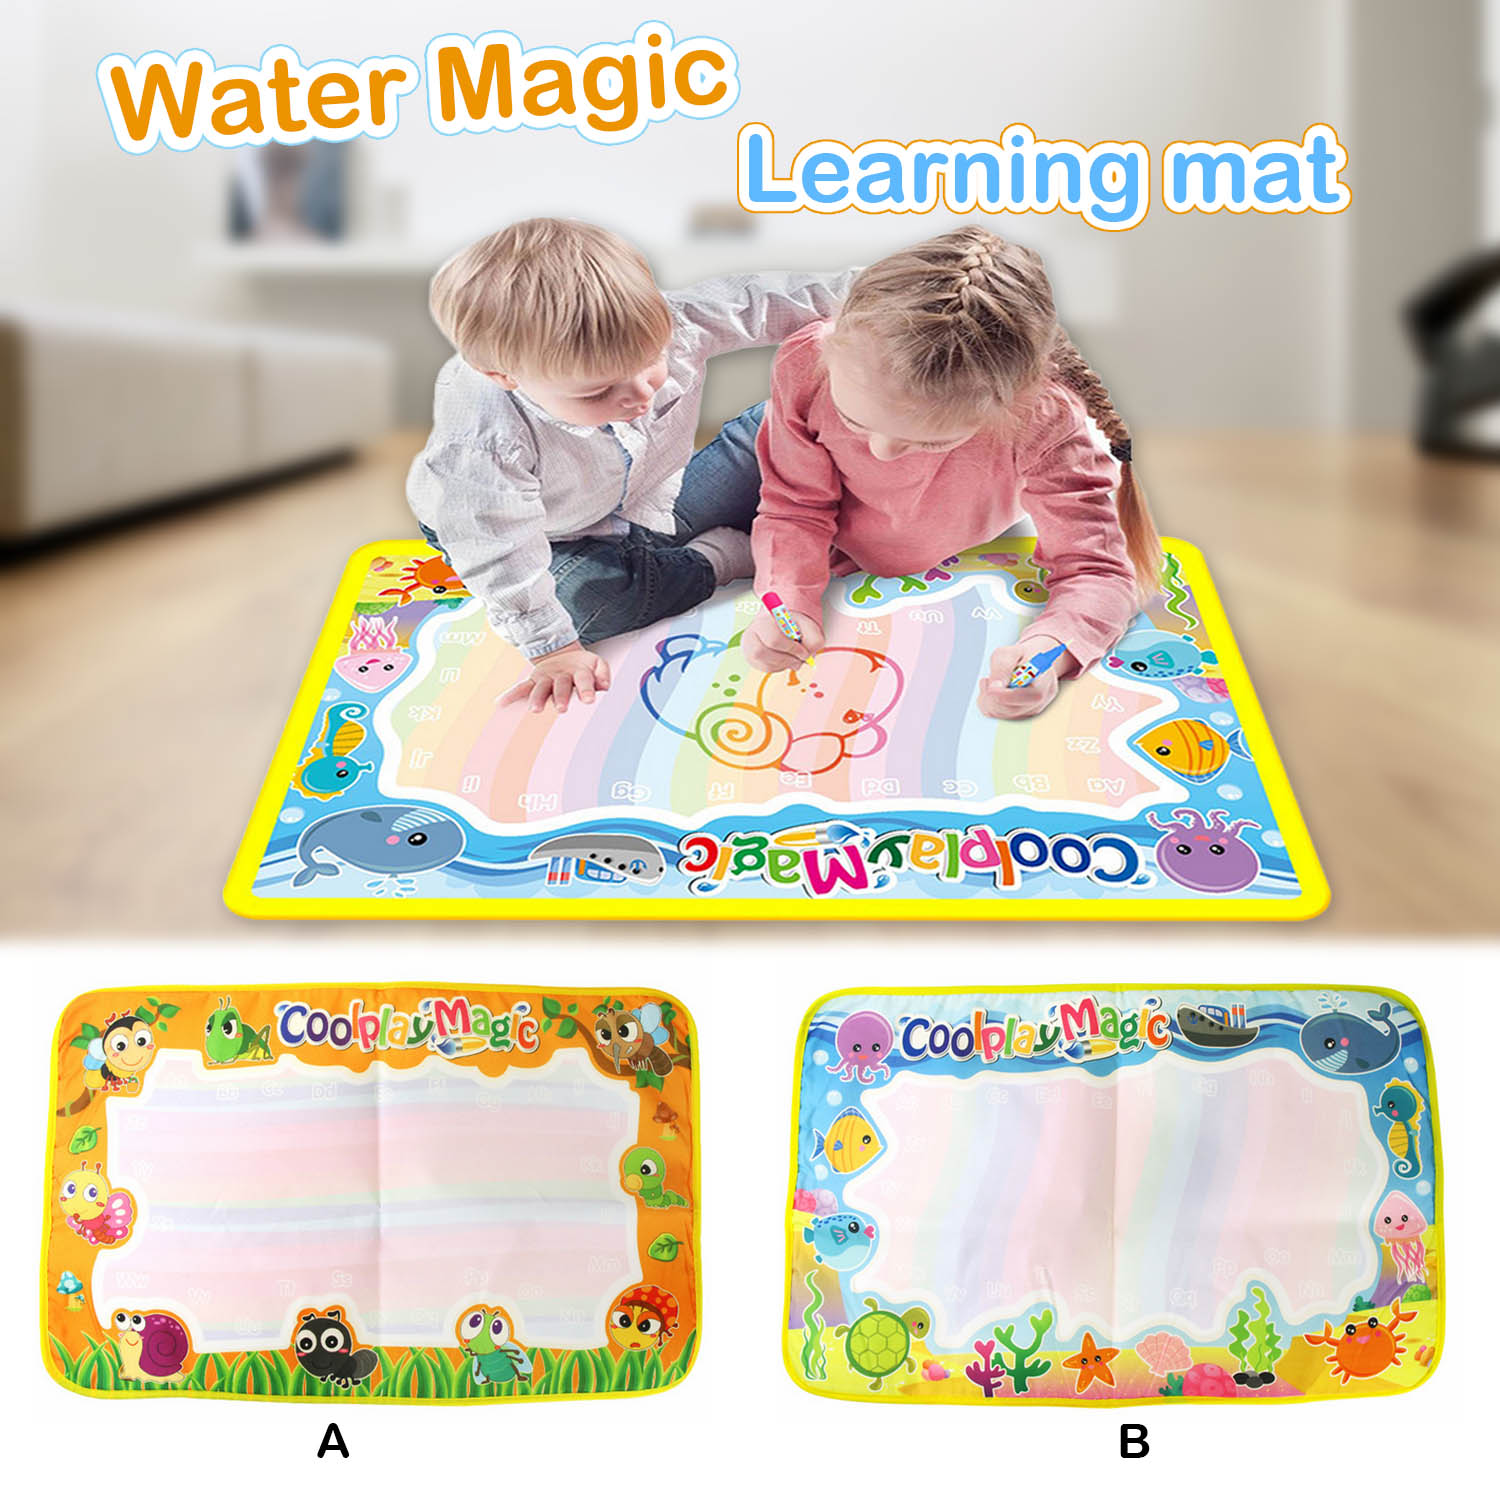 59x36cm Magic Reusable Water Drawing Mat Painting Doodle Mat Carpet with 2PCS Pens for Kids Children Early Educational Toys